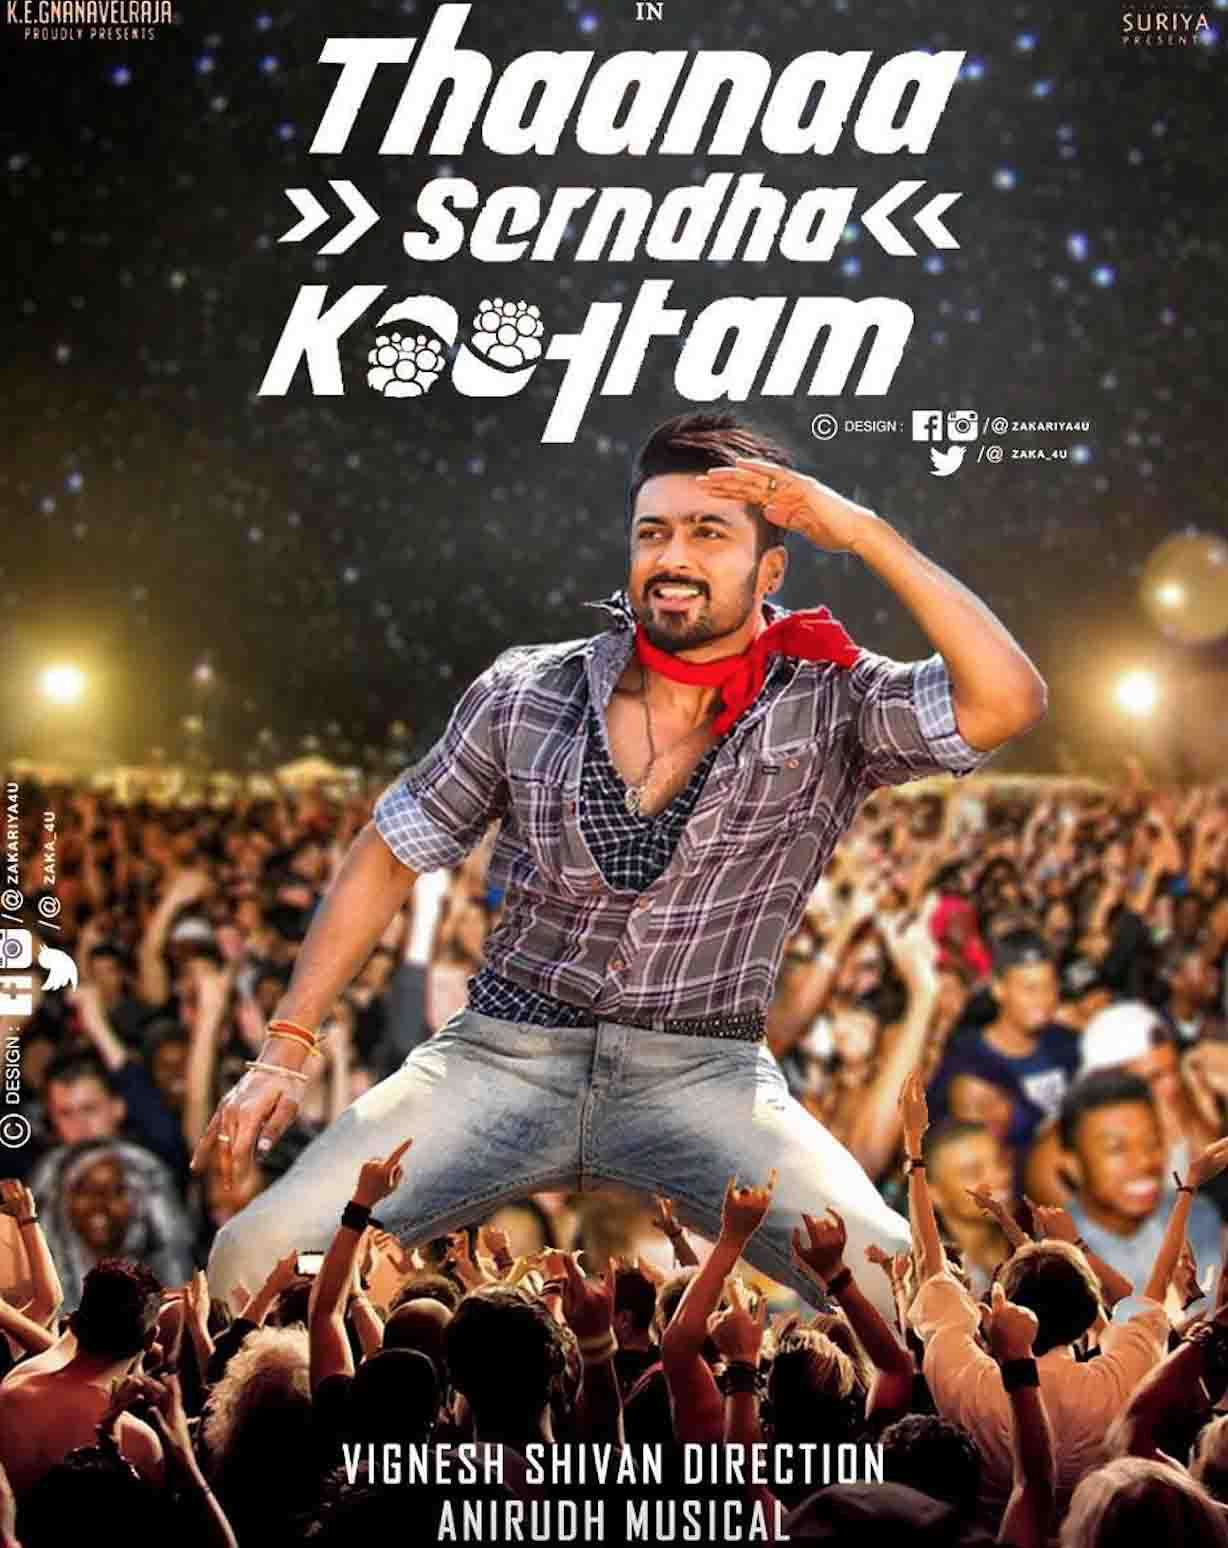 Thaanaa serndha koottam 2018 movie full star cast crew story thaanaa serndha koottam 2018 movie full star cast crew story release date homeupcomingtamil moviekeerthy sureshsuriya altavistaventures Gallery